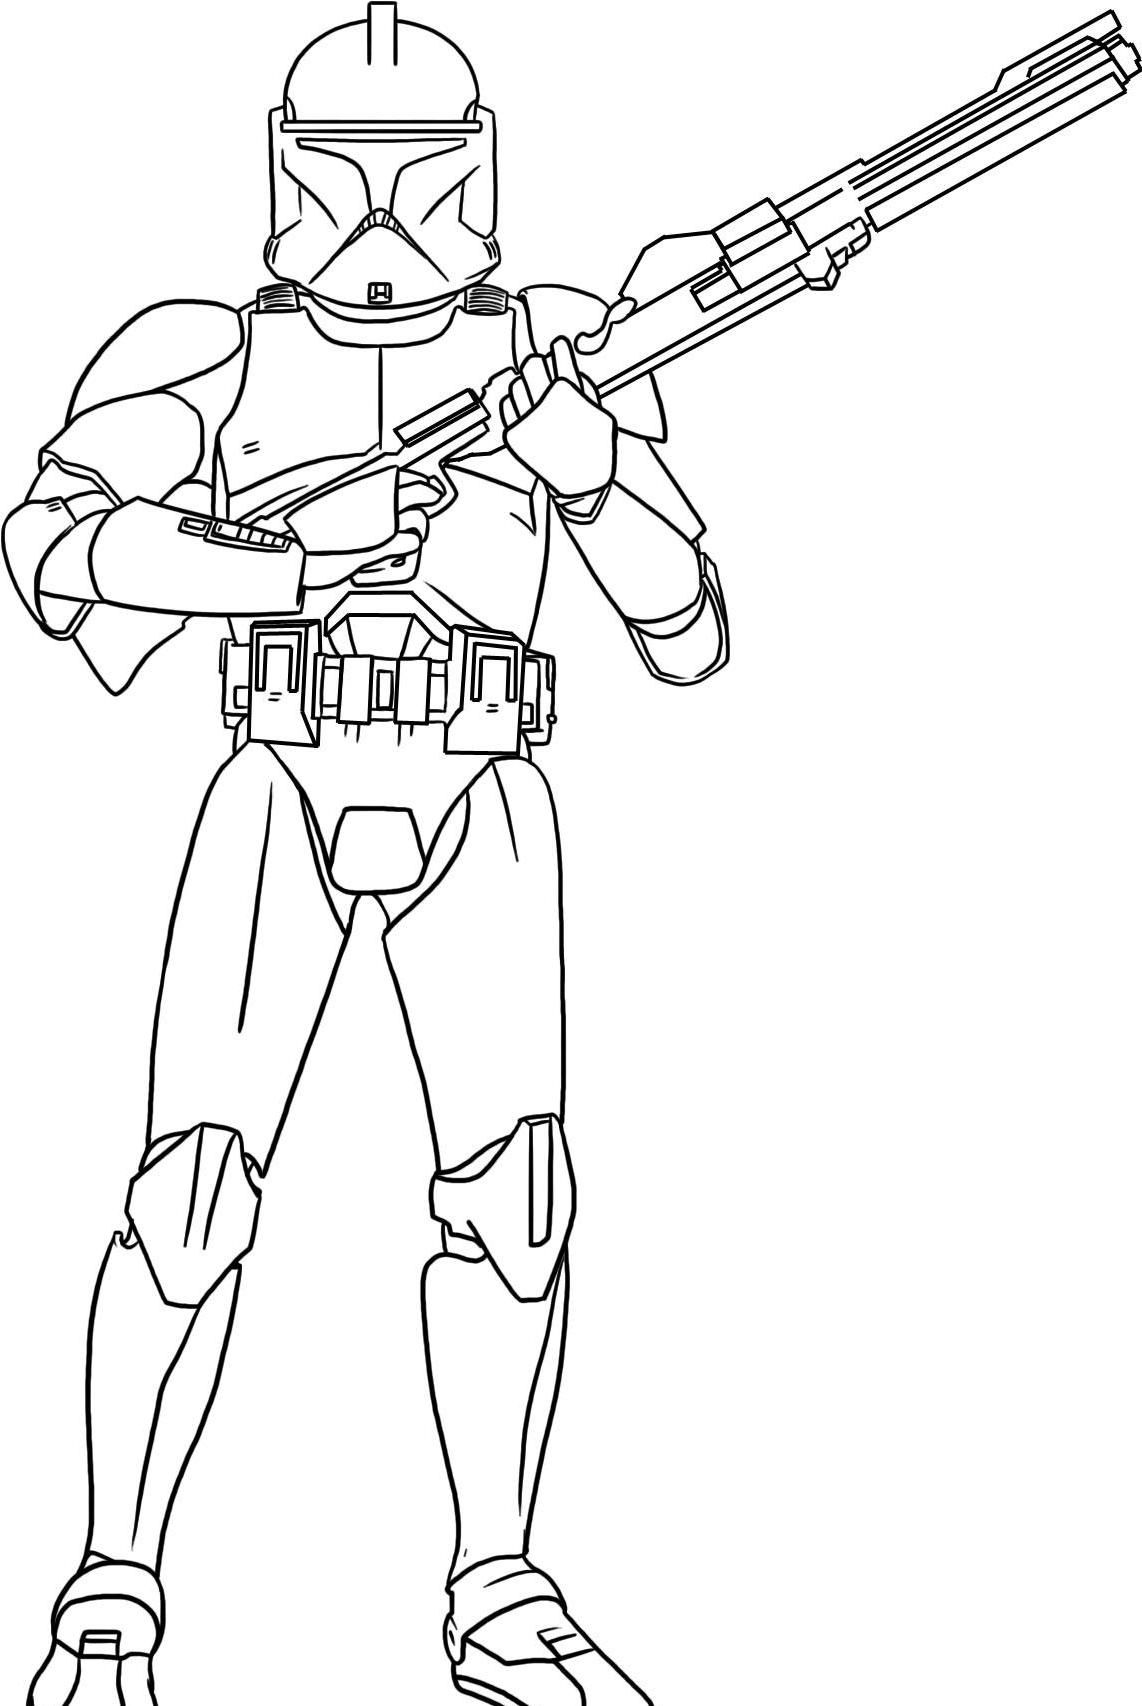 One Of The Soldiers Star Wars Coloring Pages Star Wars Drawings